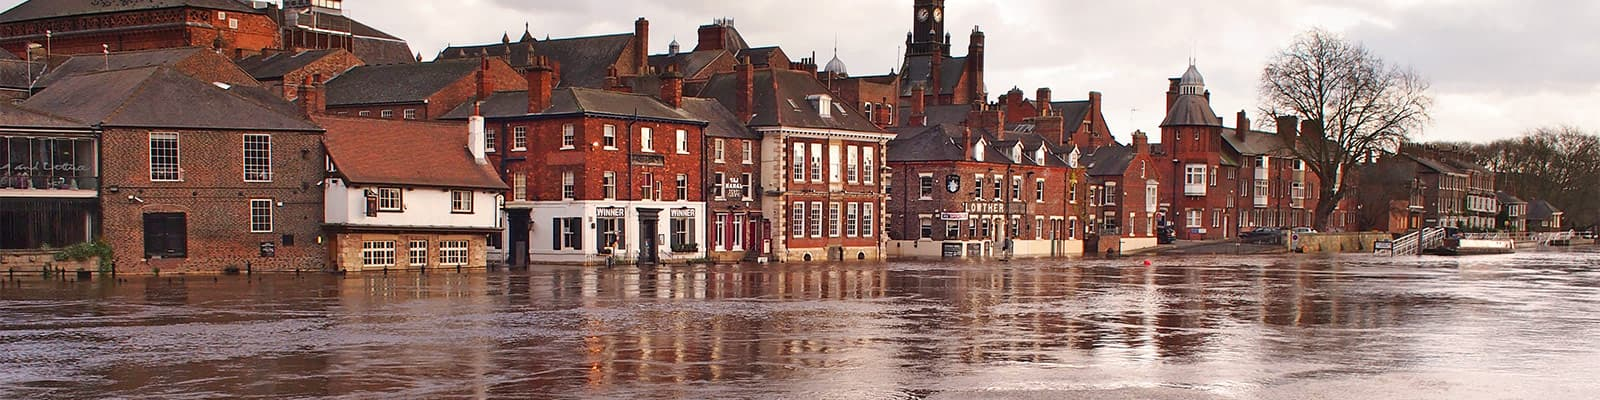 Flooding in York in 2015